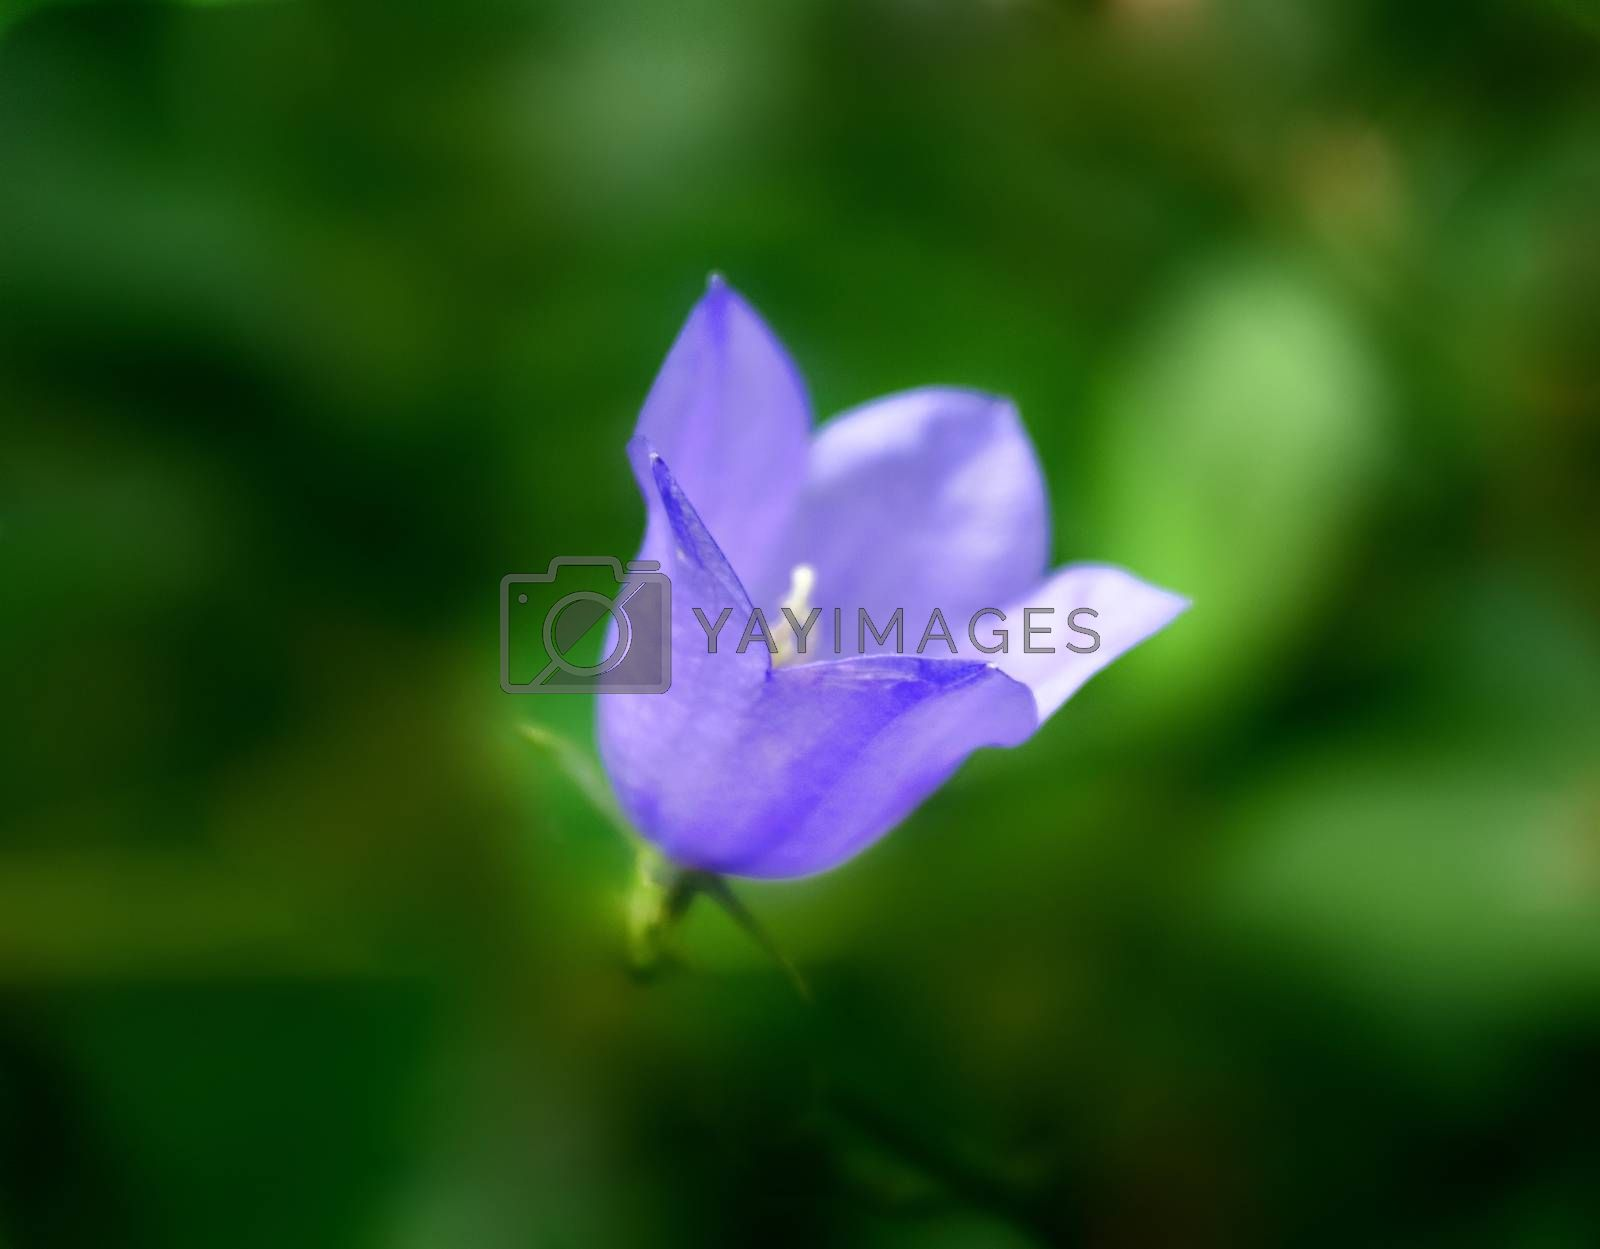 Beautiful Purple Bell Flower closeup on Natural Green Blurred background Outdoors. Focus on Edge of Petals